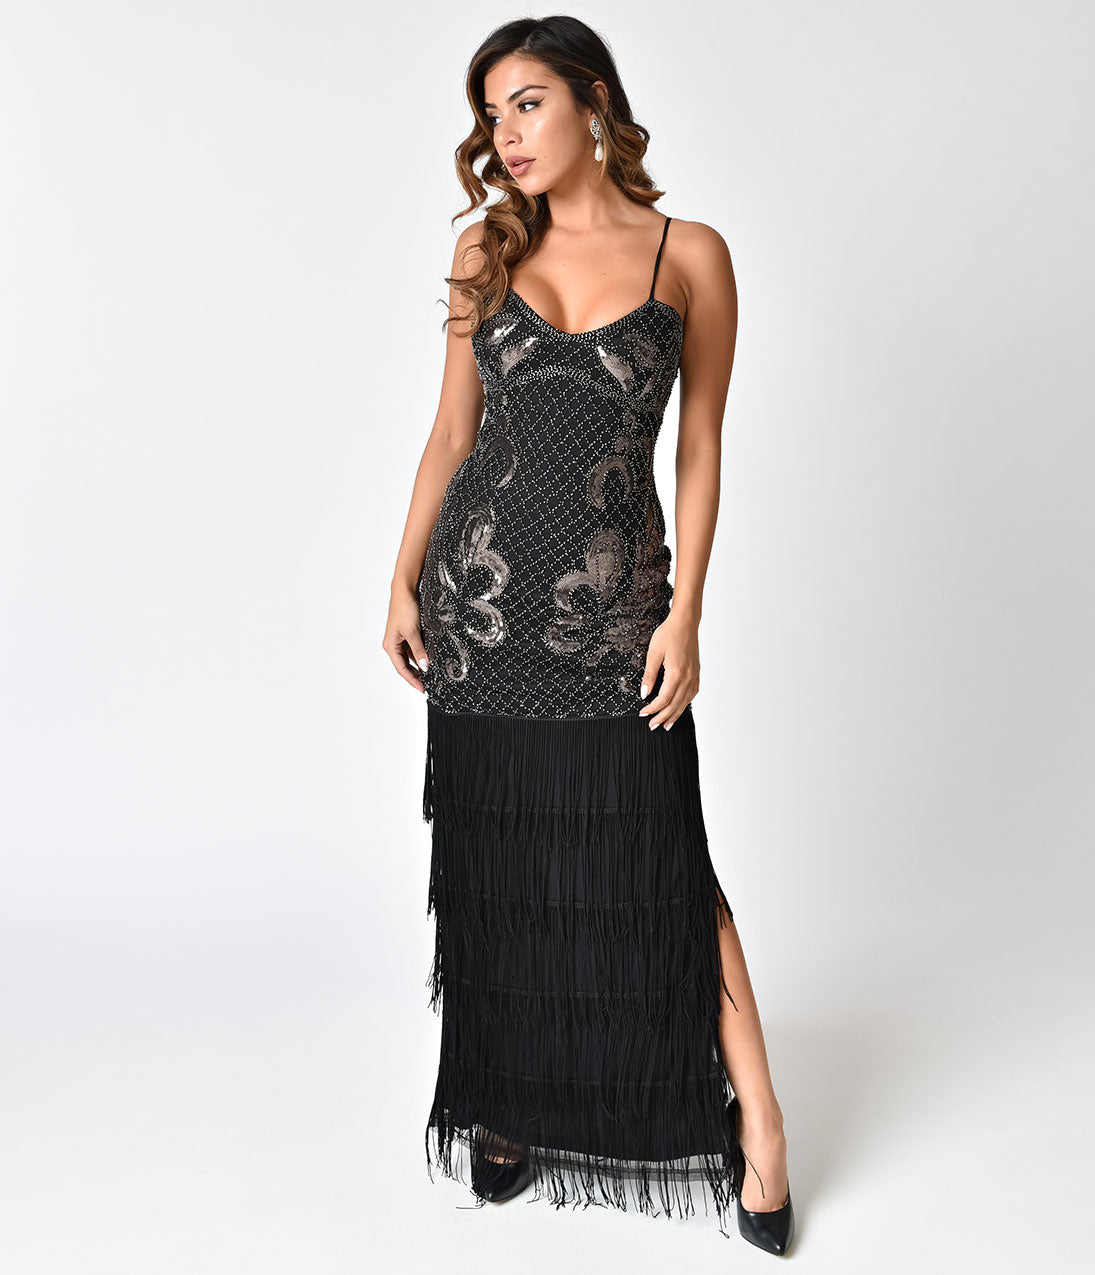 Vintage Look Evening Gowns